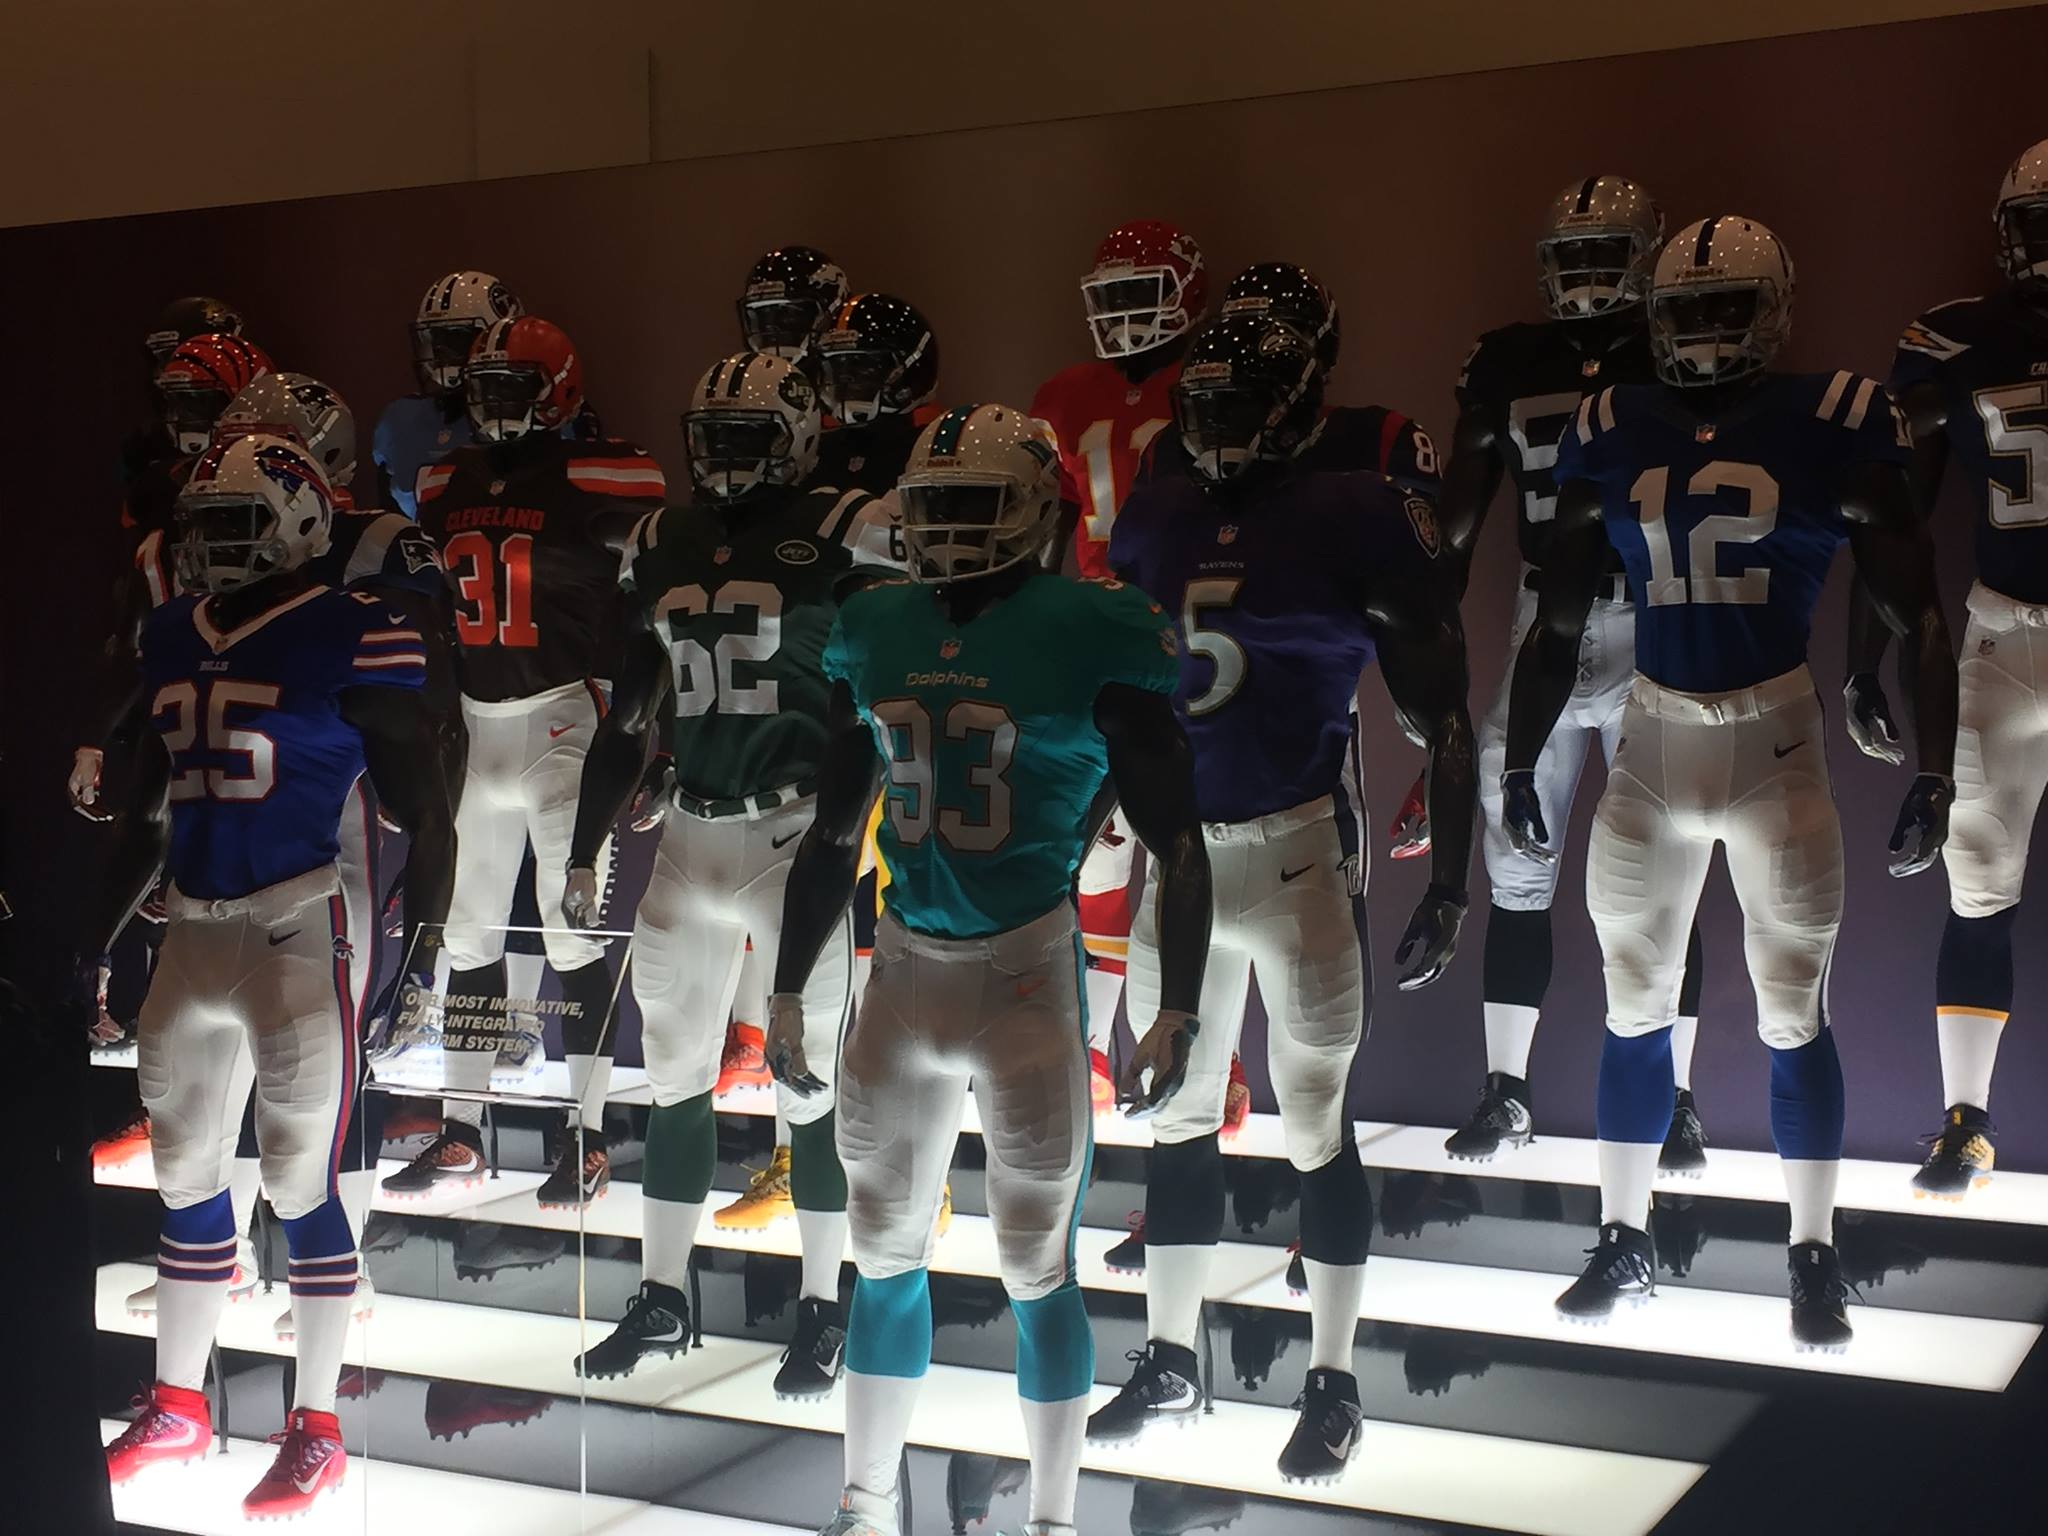 <div class='meta'><div class='origin-logo' data-origin='none'></div><span class='caption-text' data-credit='KGO-TV'>NFL jerseys on display at NFL Experience in San Francisco, Sunday, January 31, 2016.</span></div>